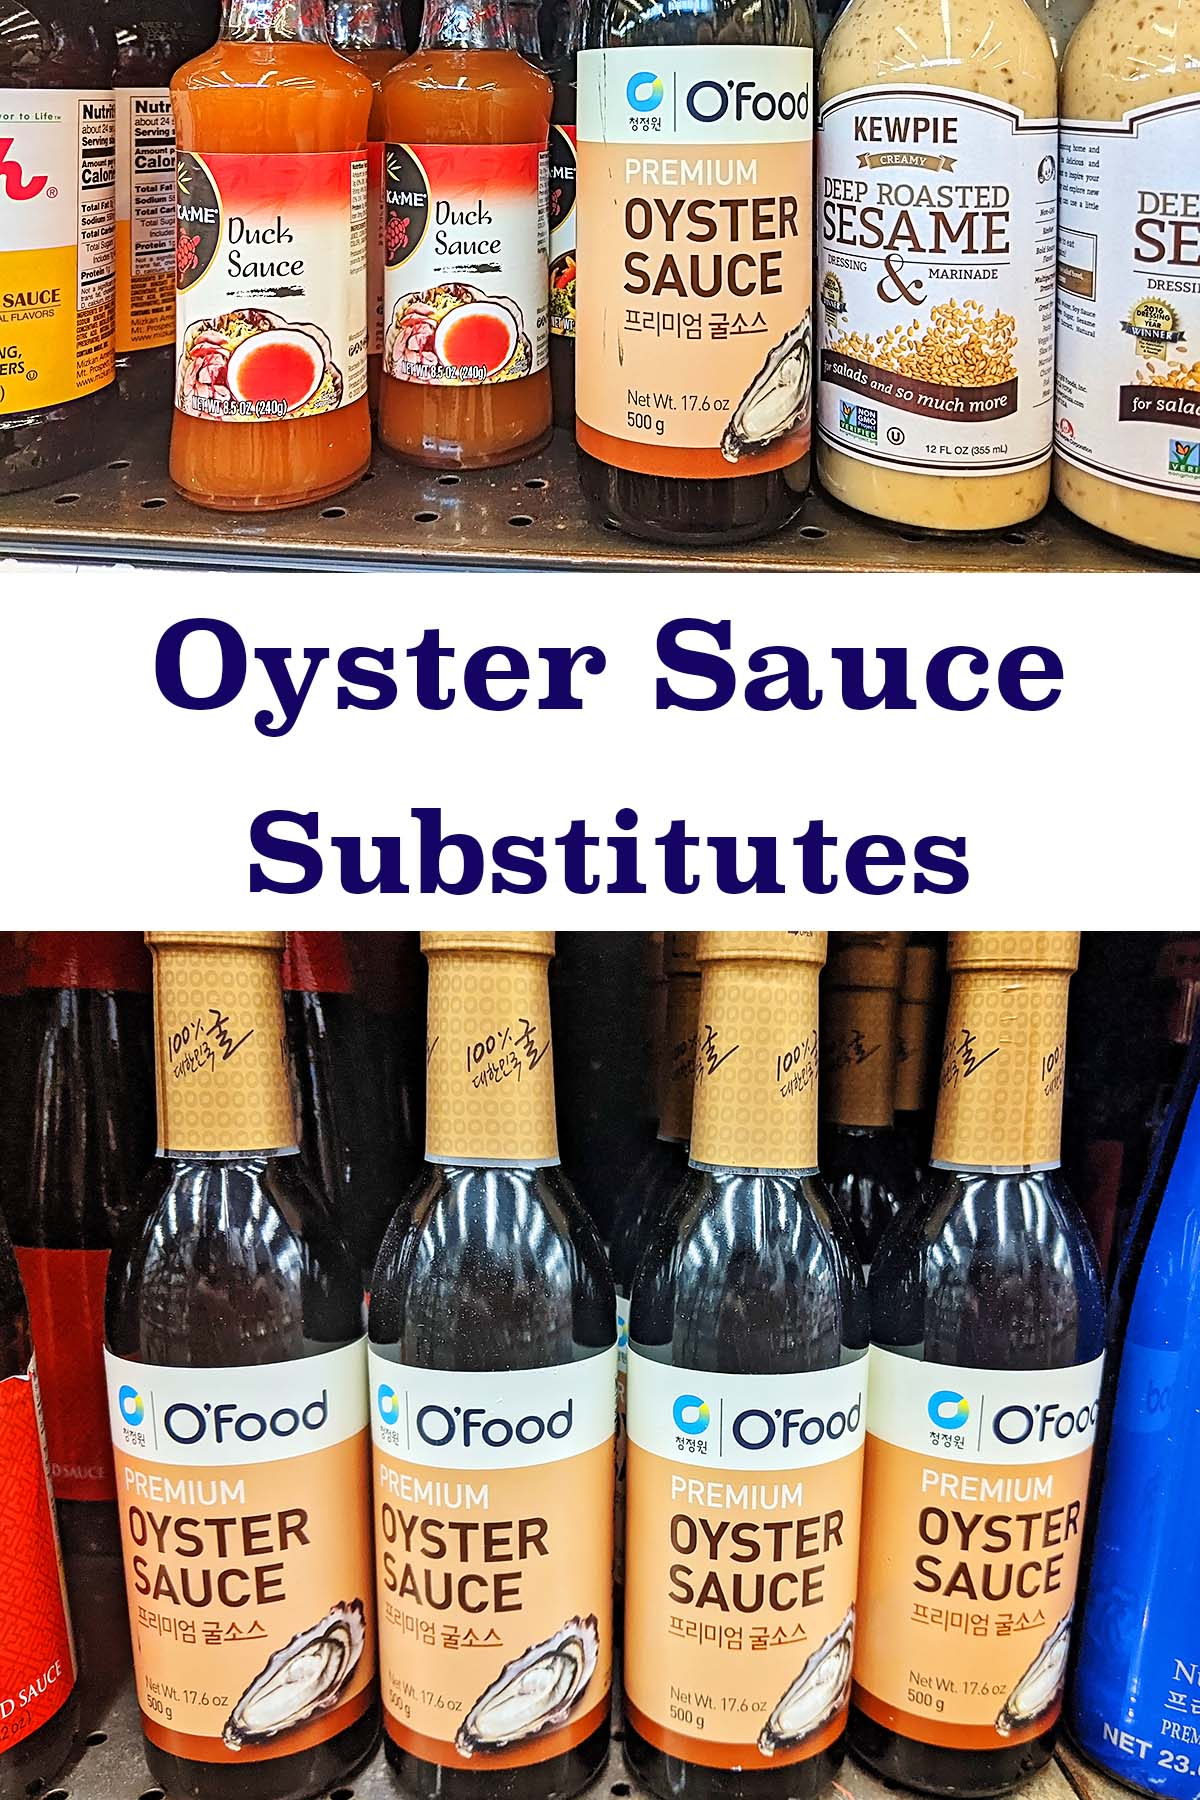 grocery store shelf with bottles of oyster sauce and other sauces